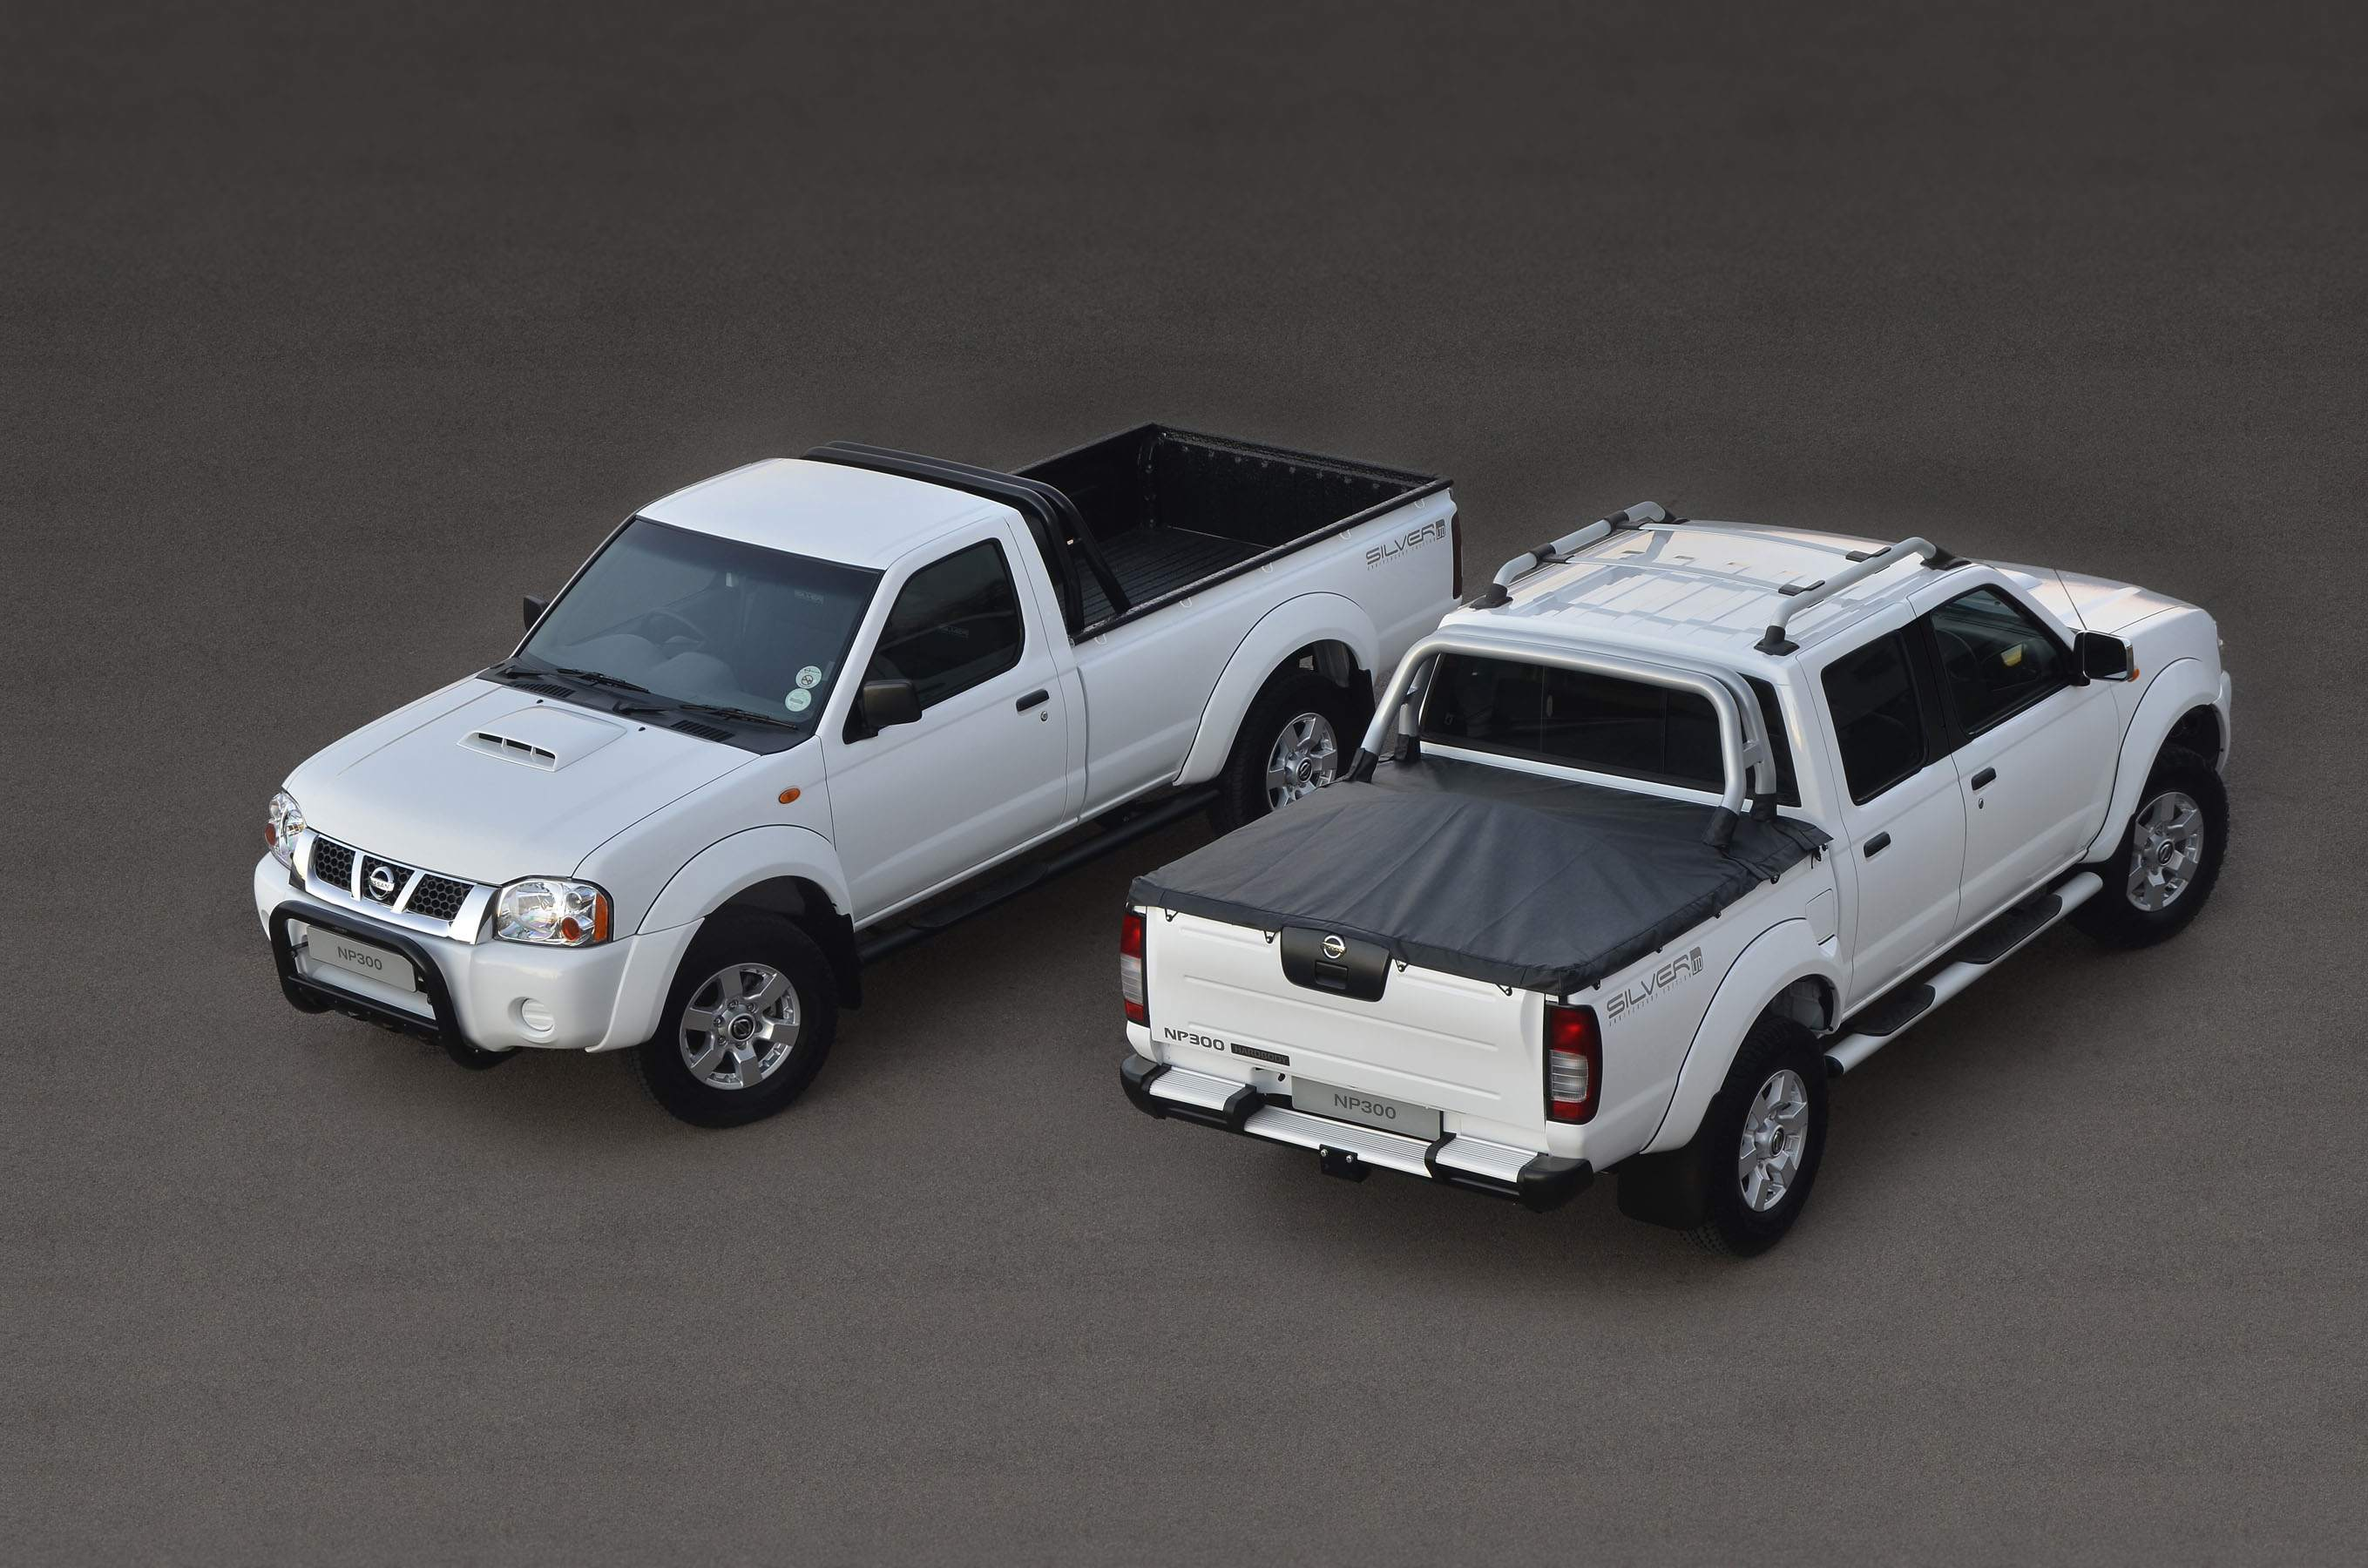 Special Edition For Nissan Hardbody: Latest News – Surf4cars